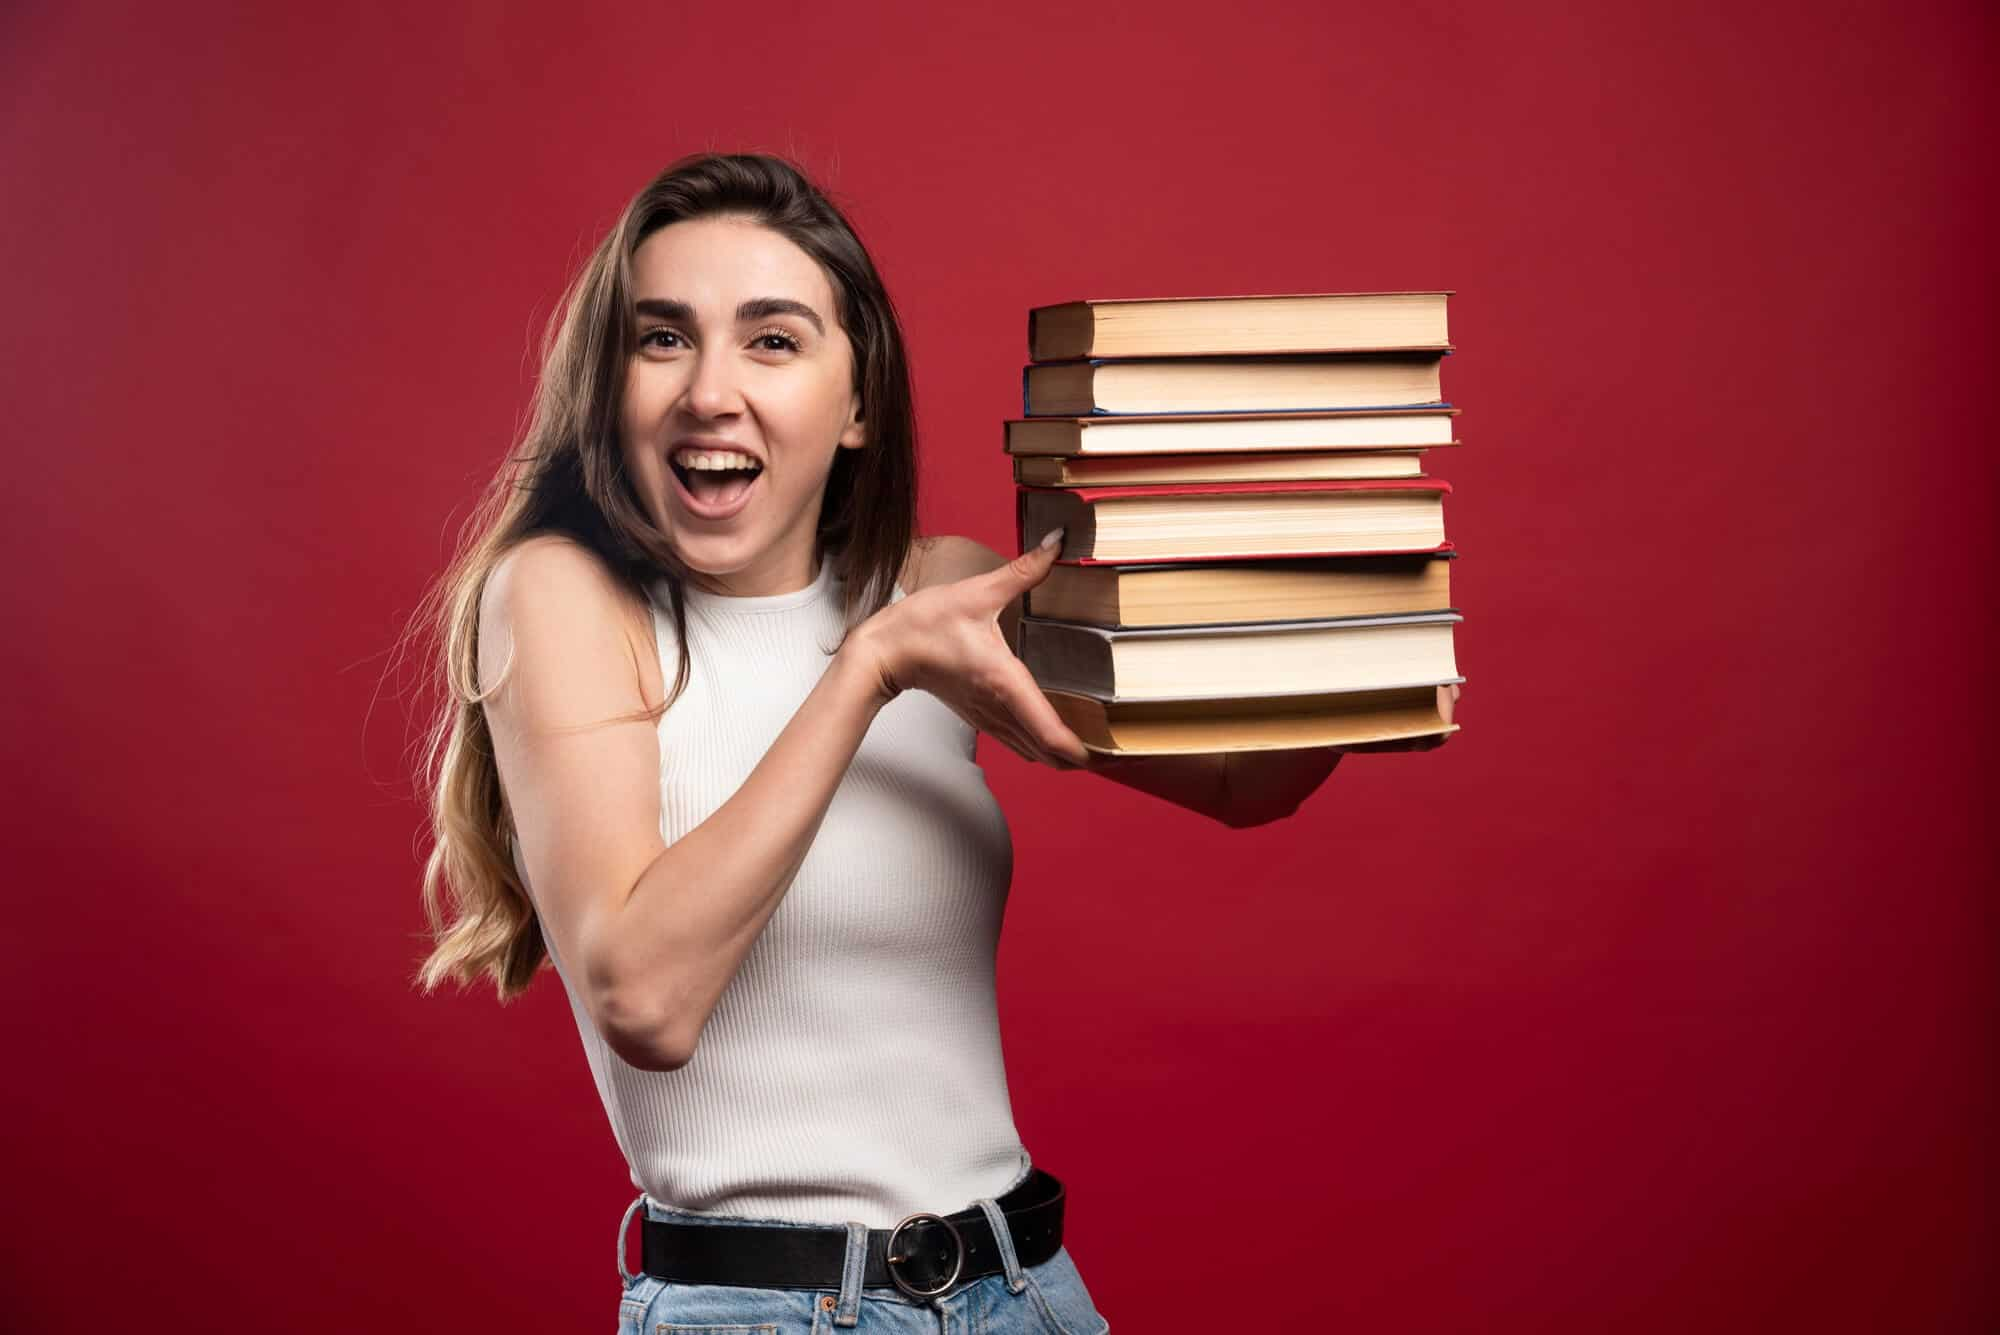 girl carrying a stack of books with red background